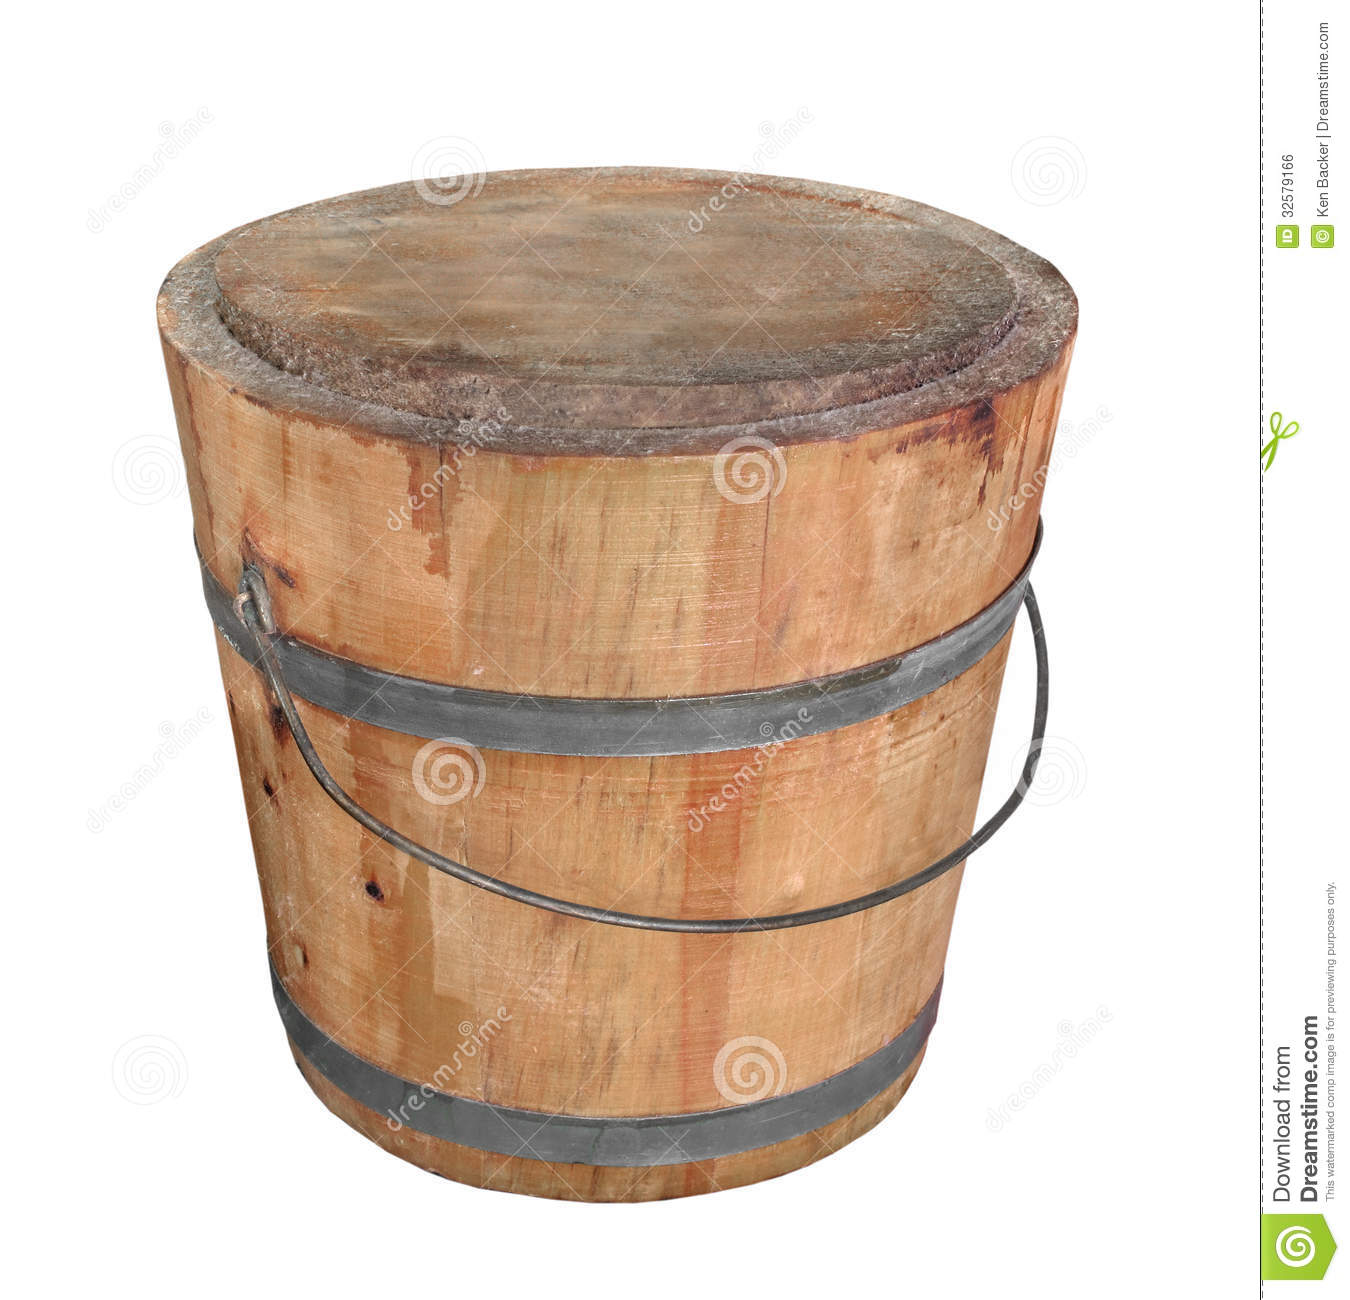 Old wooden pail isolated.